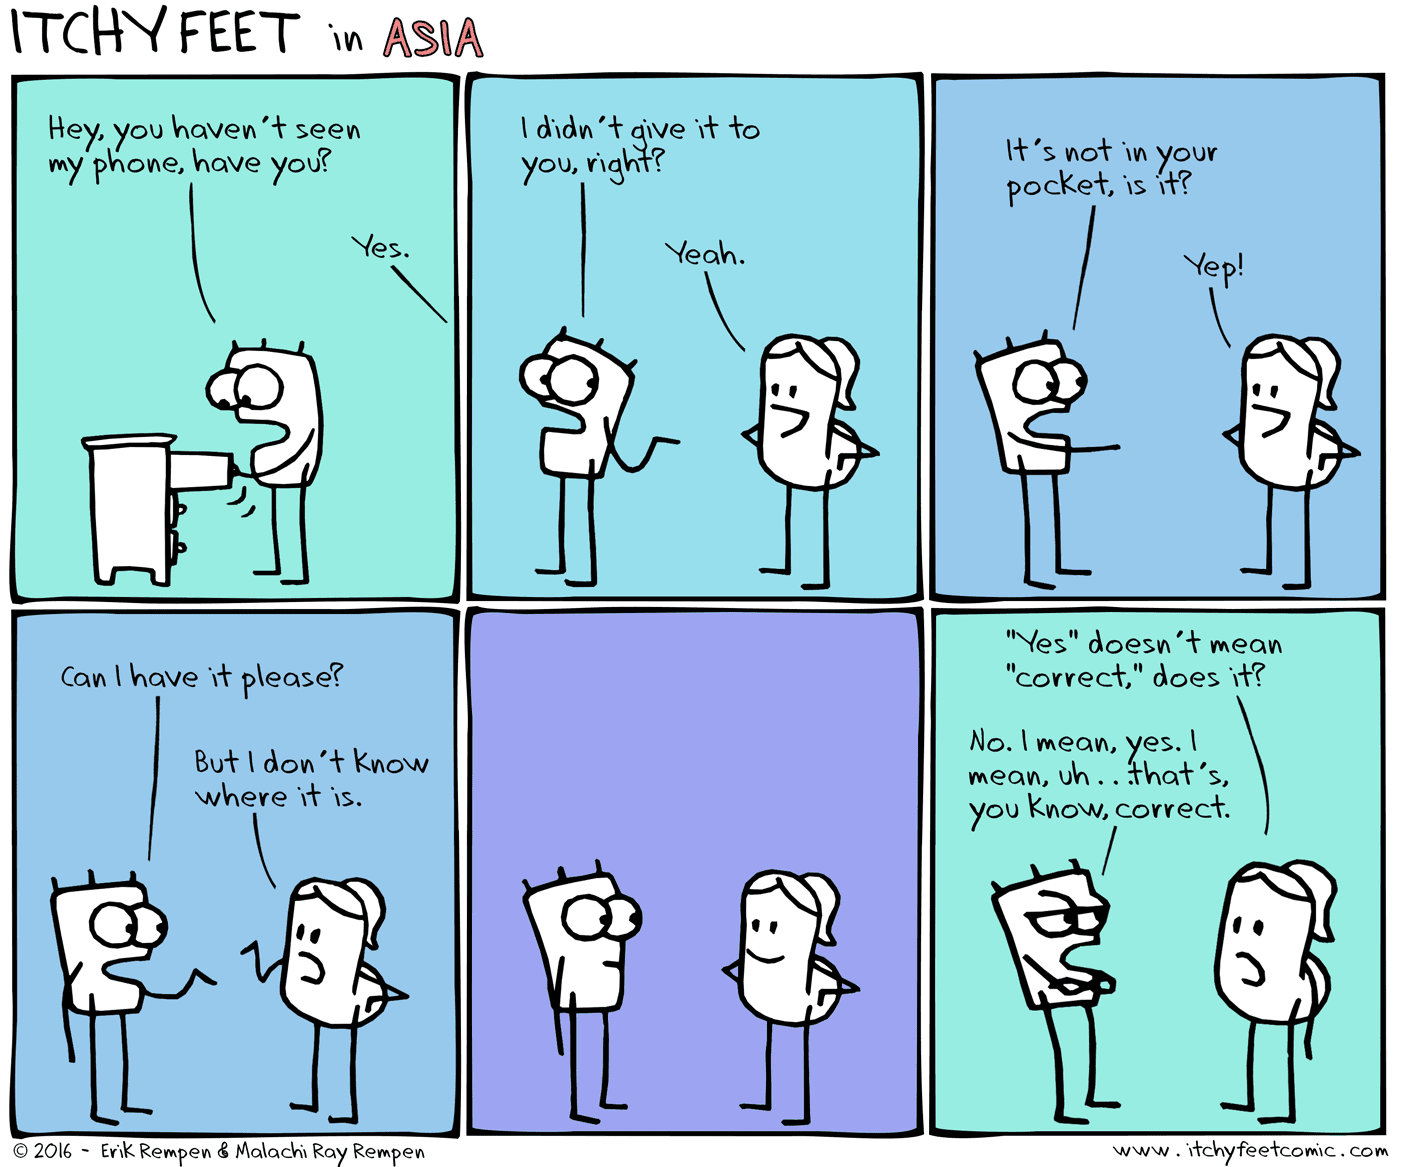 Yes doesn't always mean correct in English